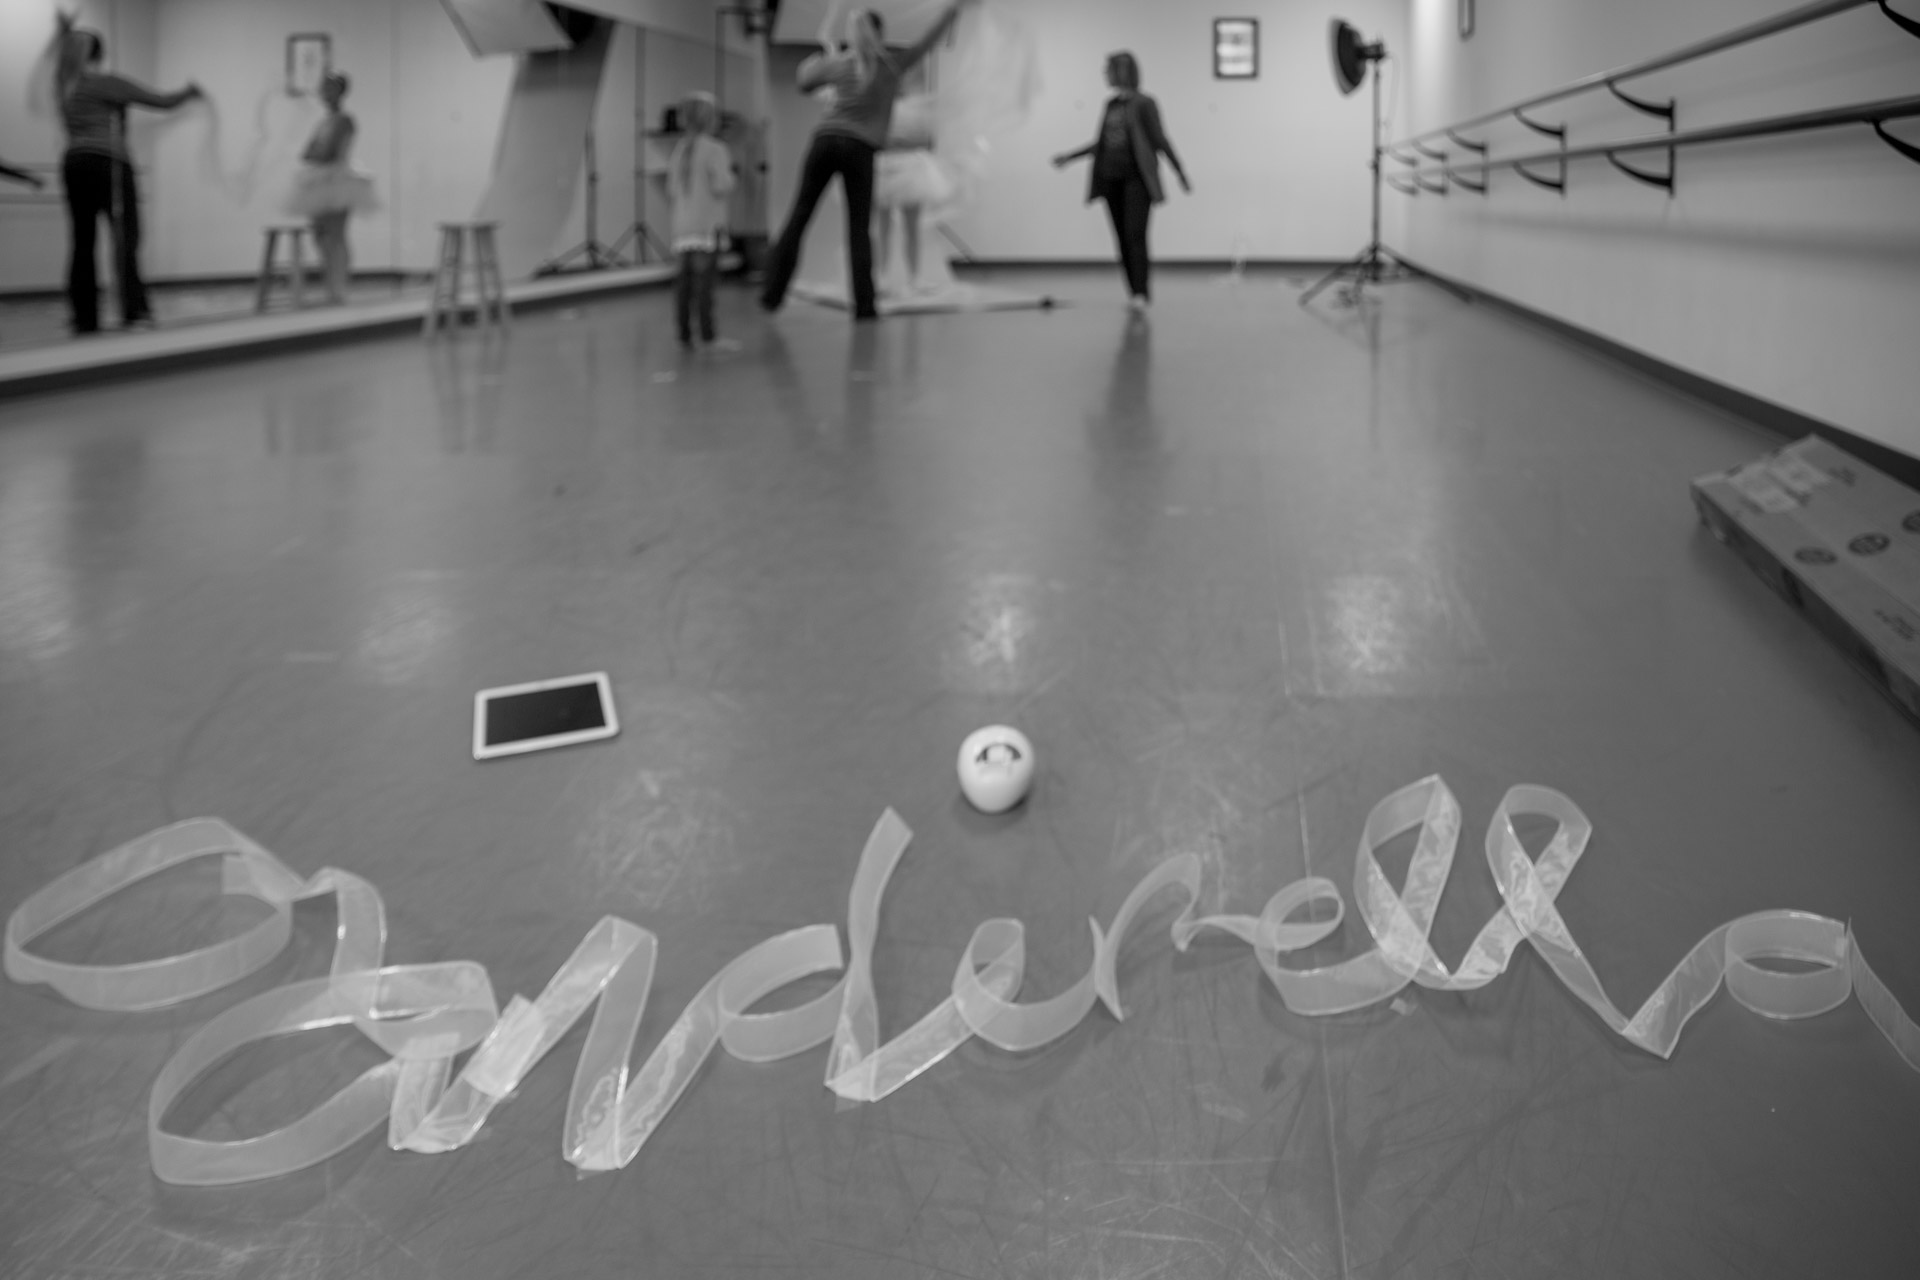 The word Cinderella made from ribbon on floor of dance studio with women in background preparing set